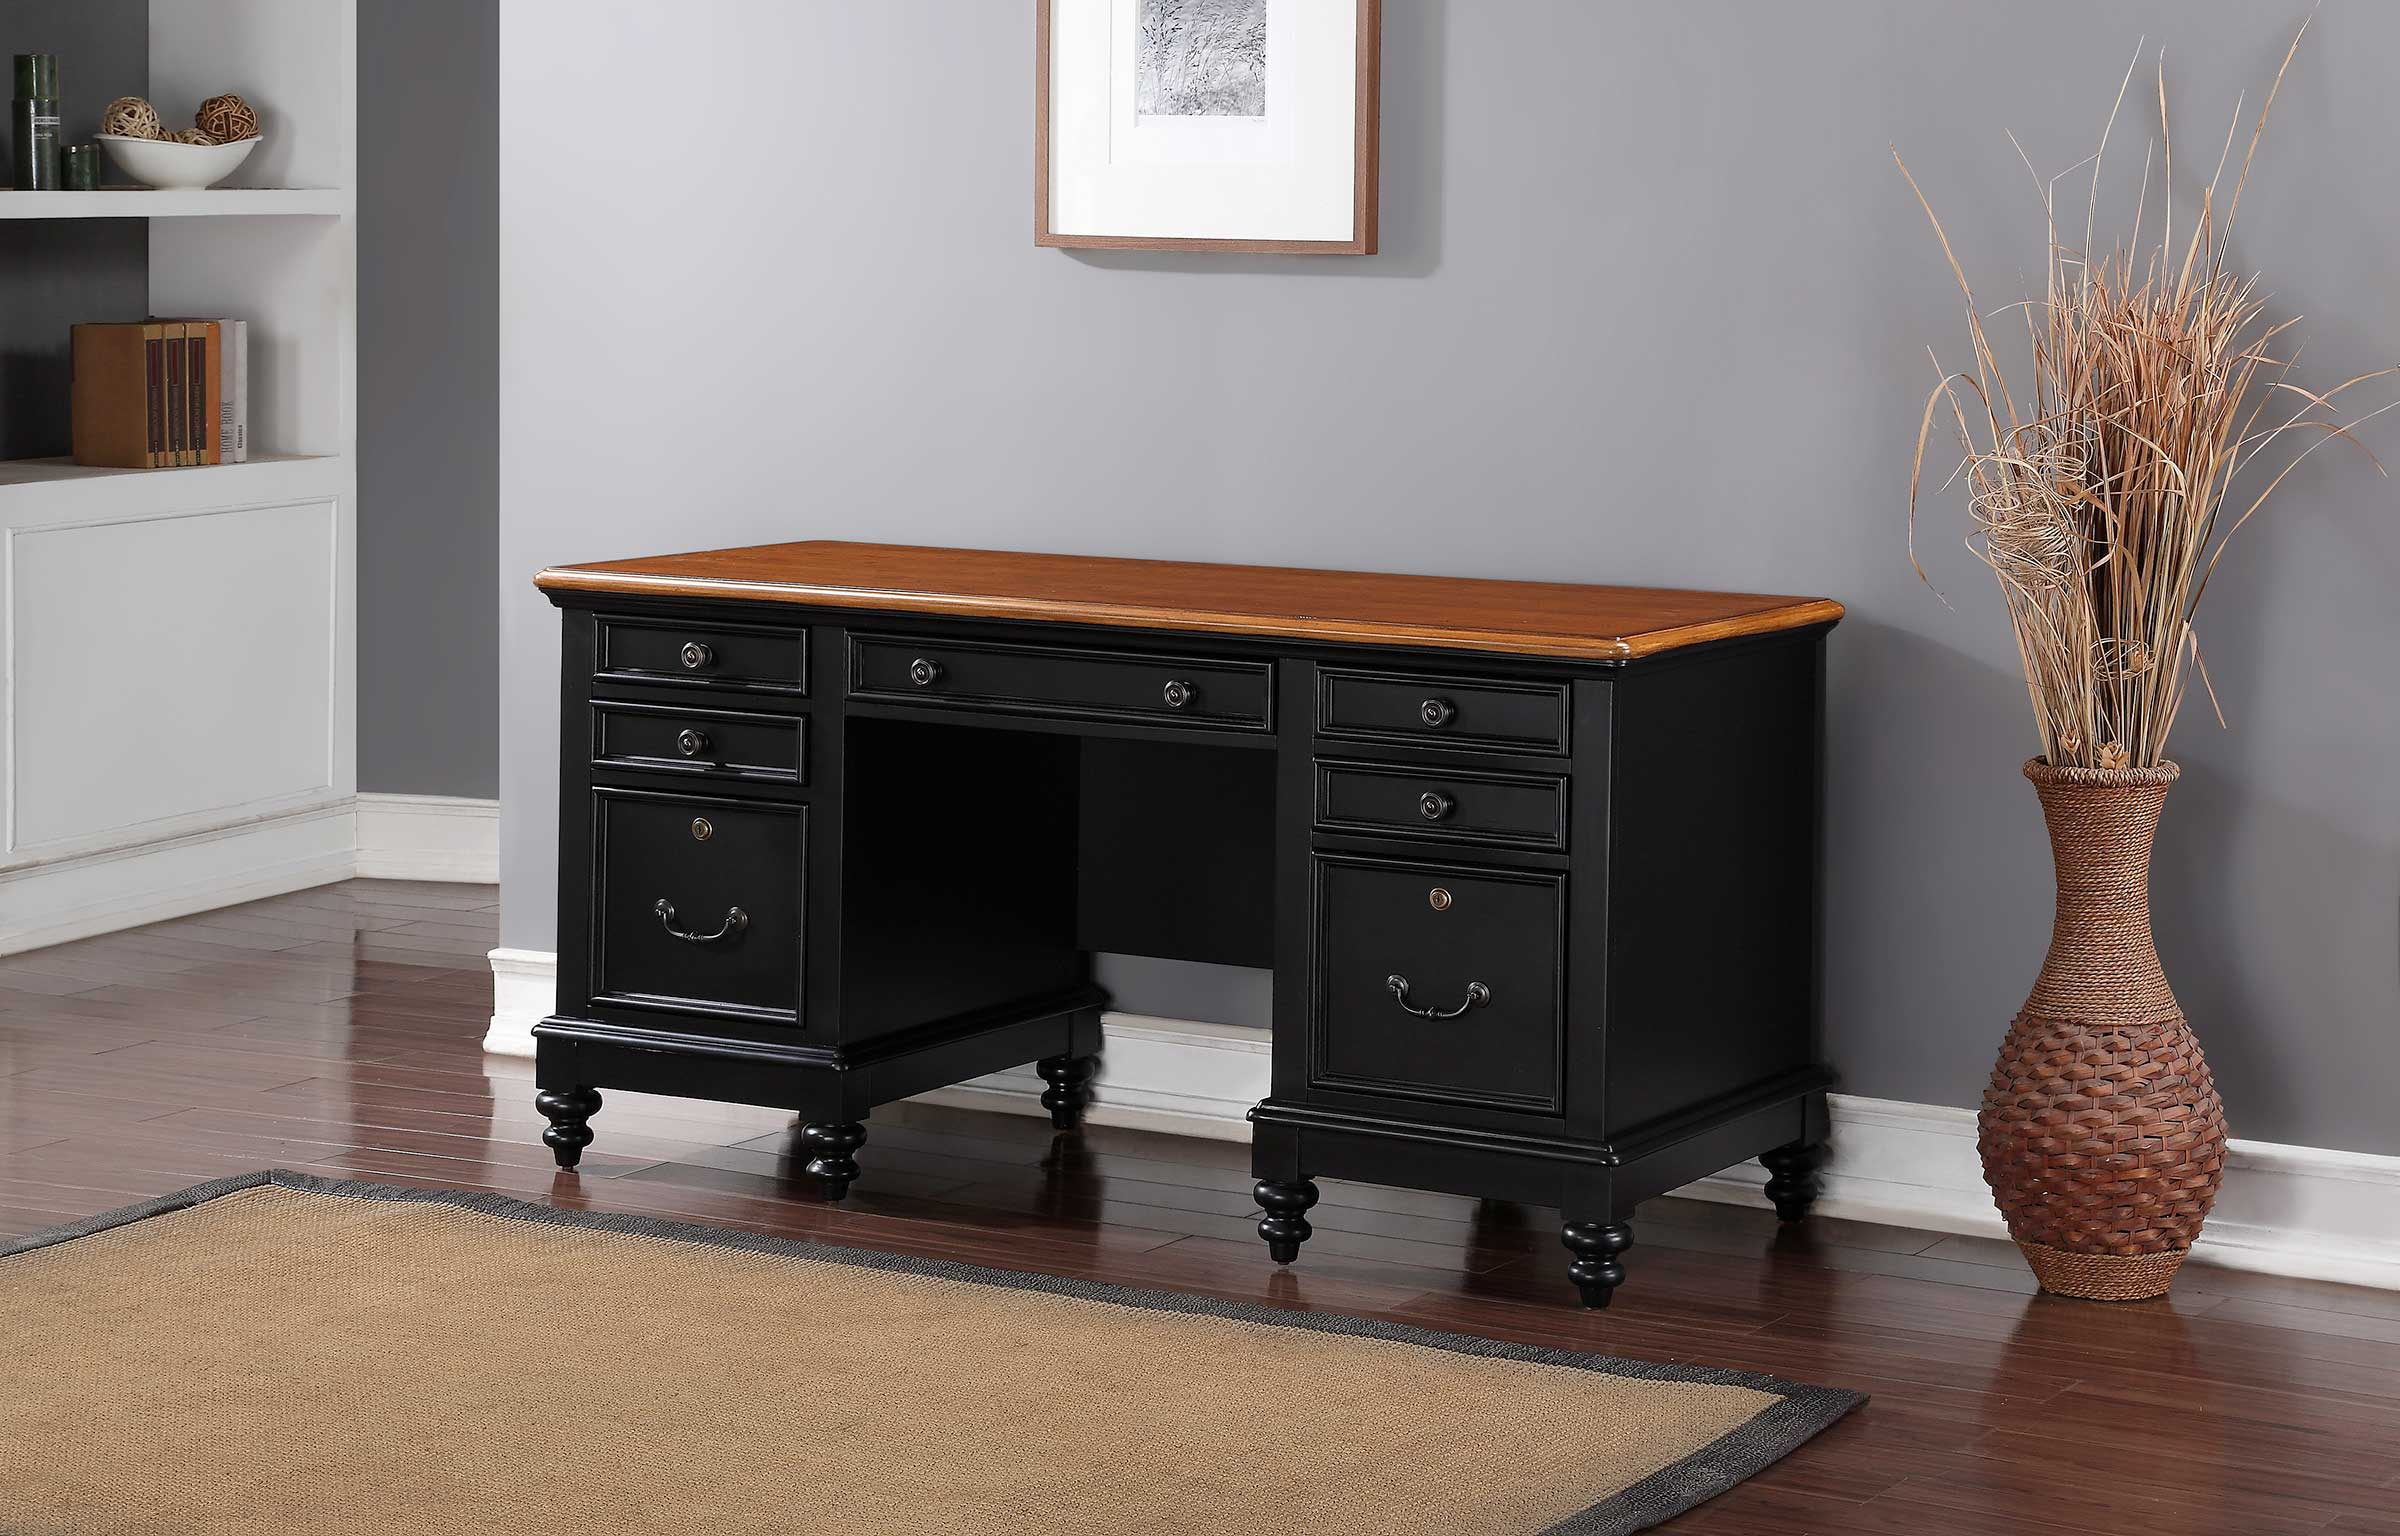 PTS Home Office Furniture - Thousand Oaks, CA